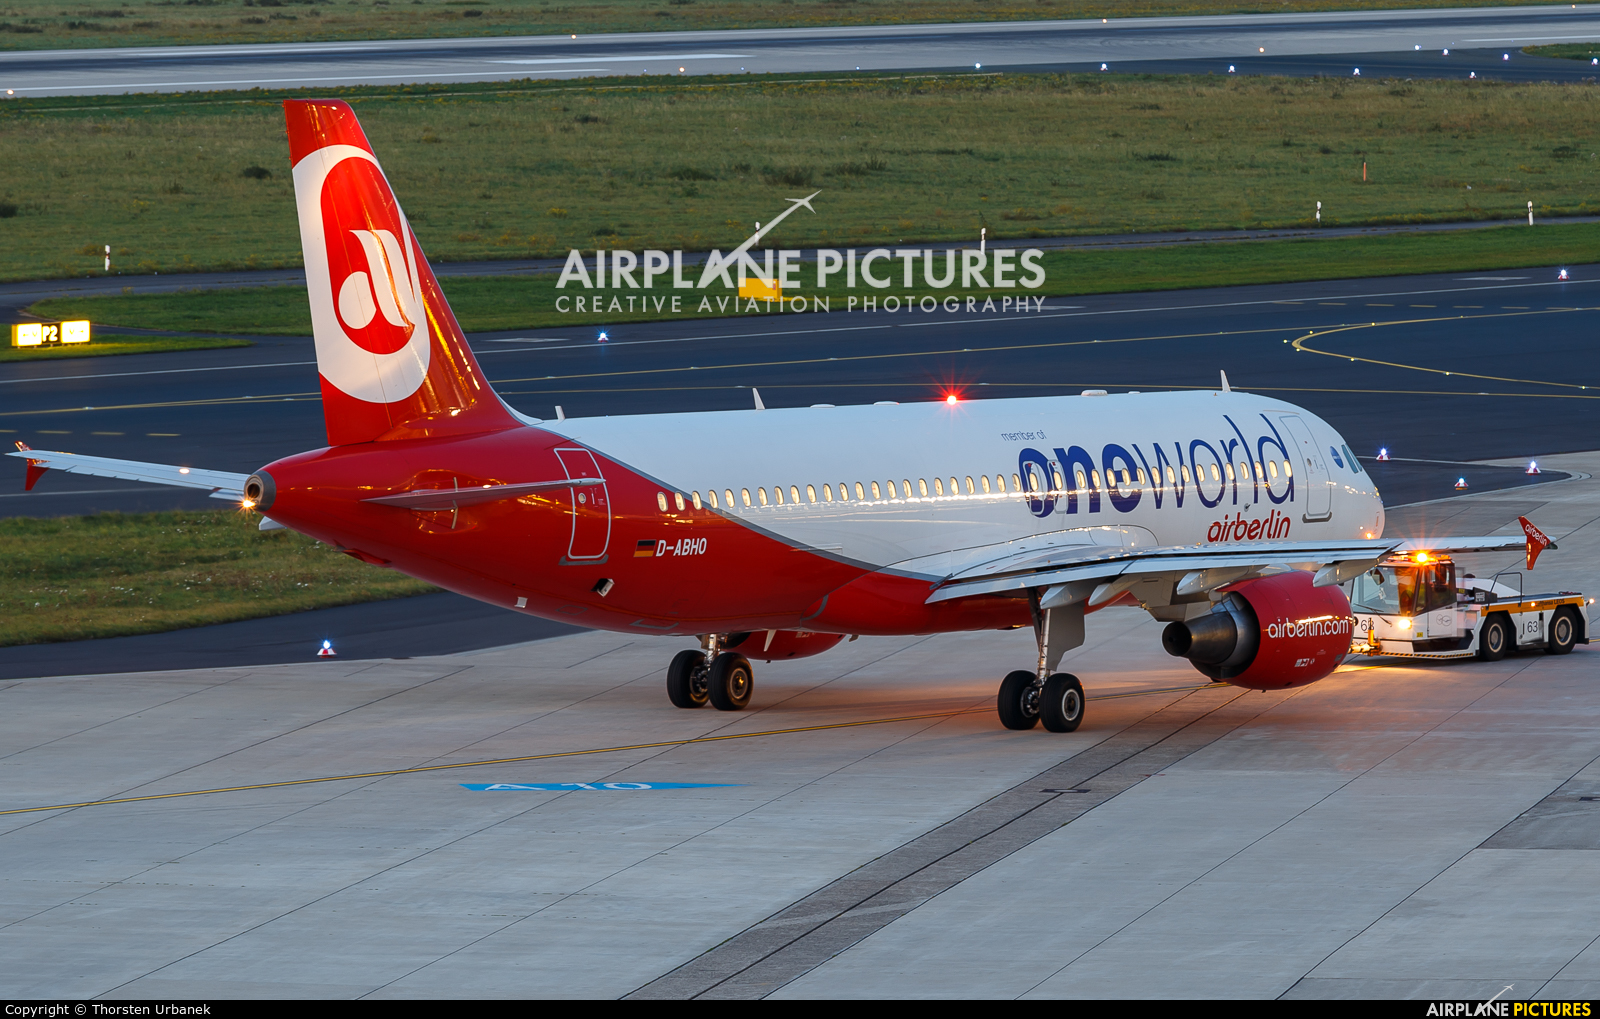 Air Berlin D-ABHO aircraft at Düsseldorf